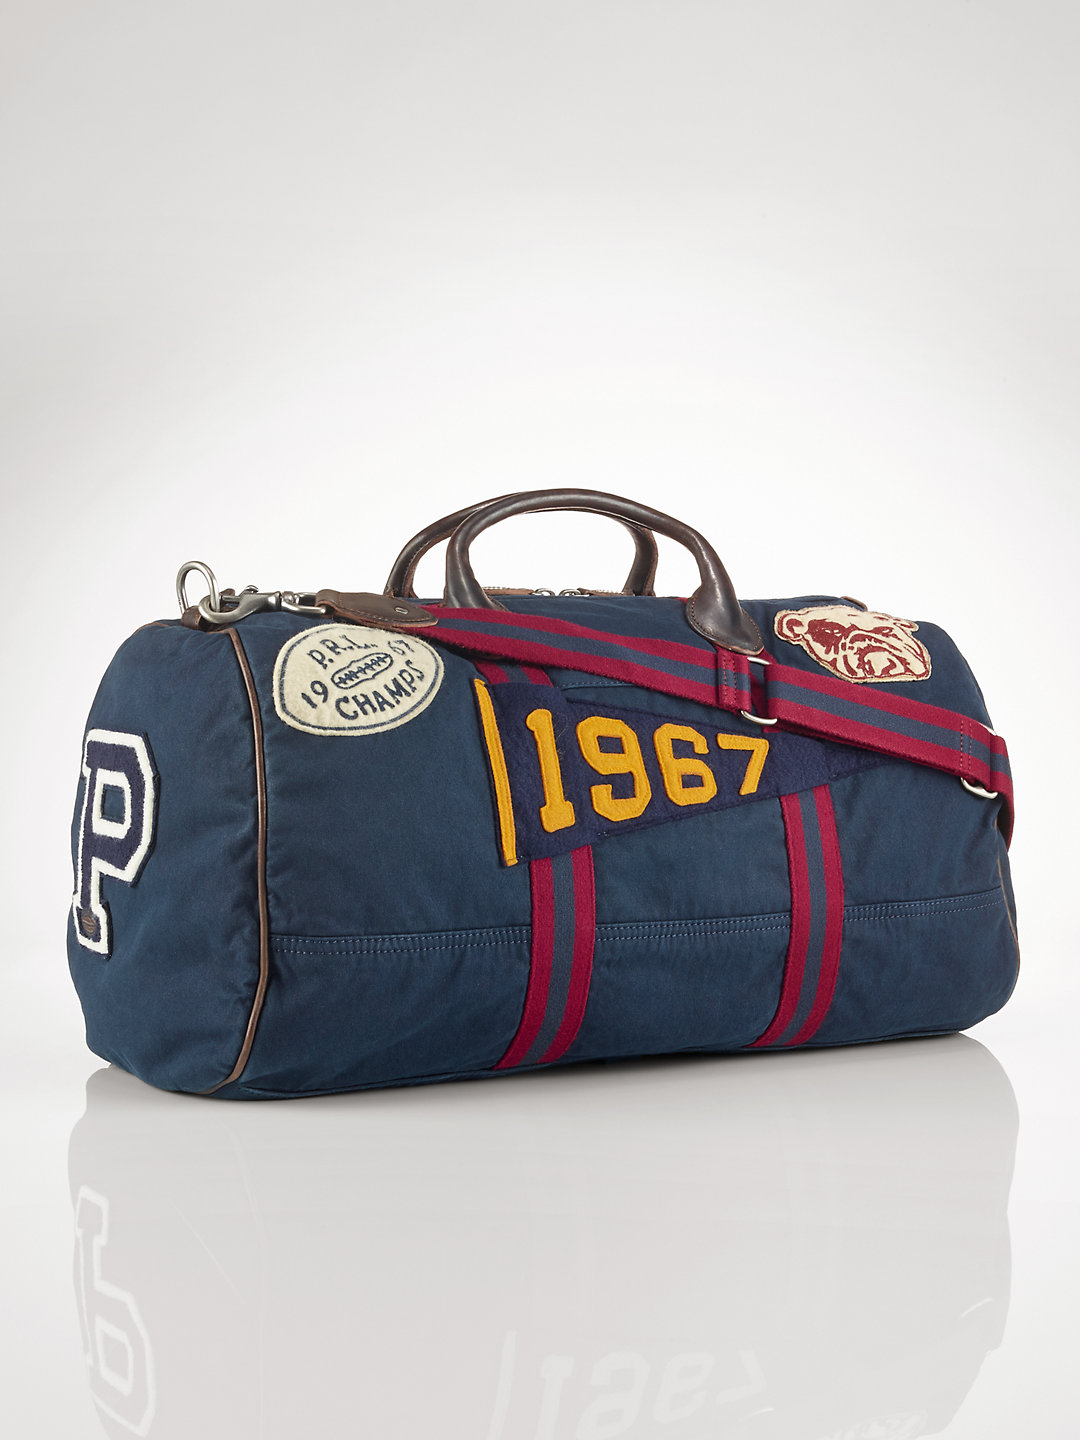 d4baf69e83 ... cheap lyst polo ralph lauren canvas stadium duffel bag in blue for men  d30ef b275c